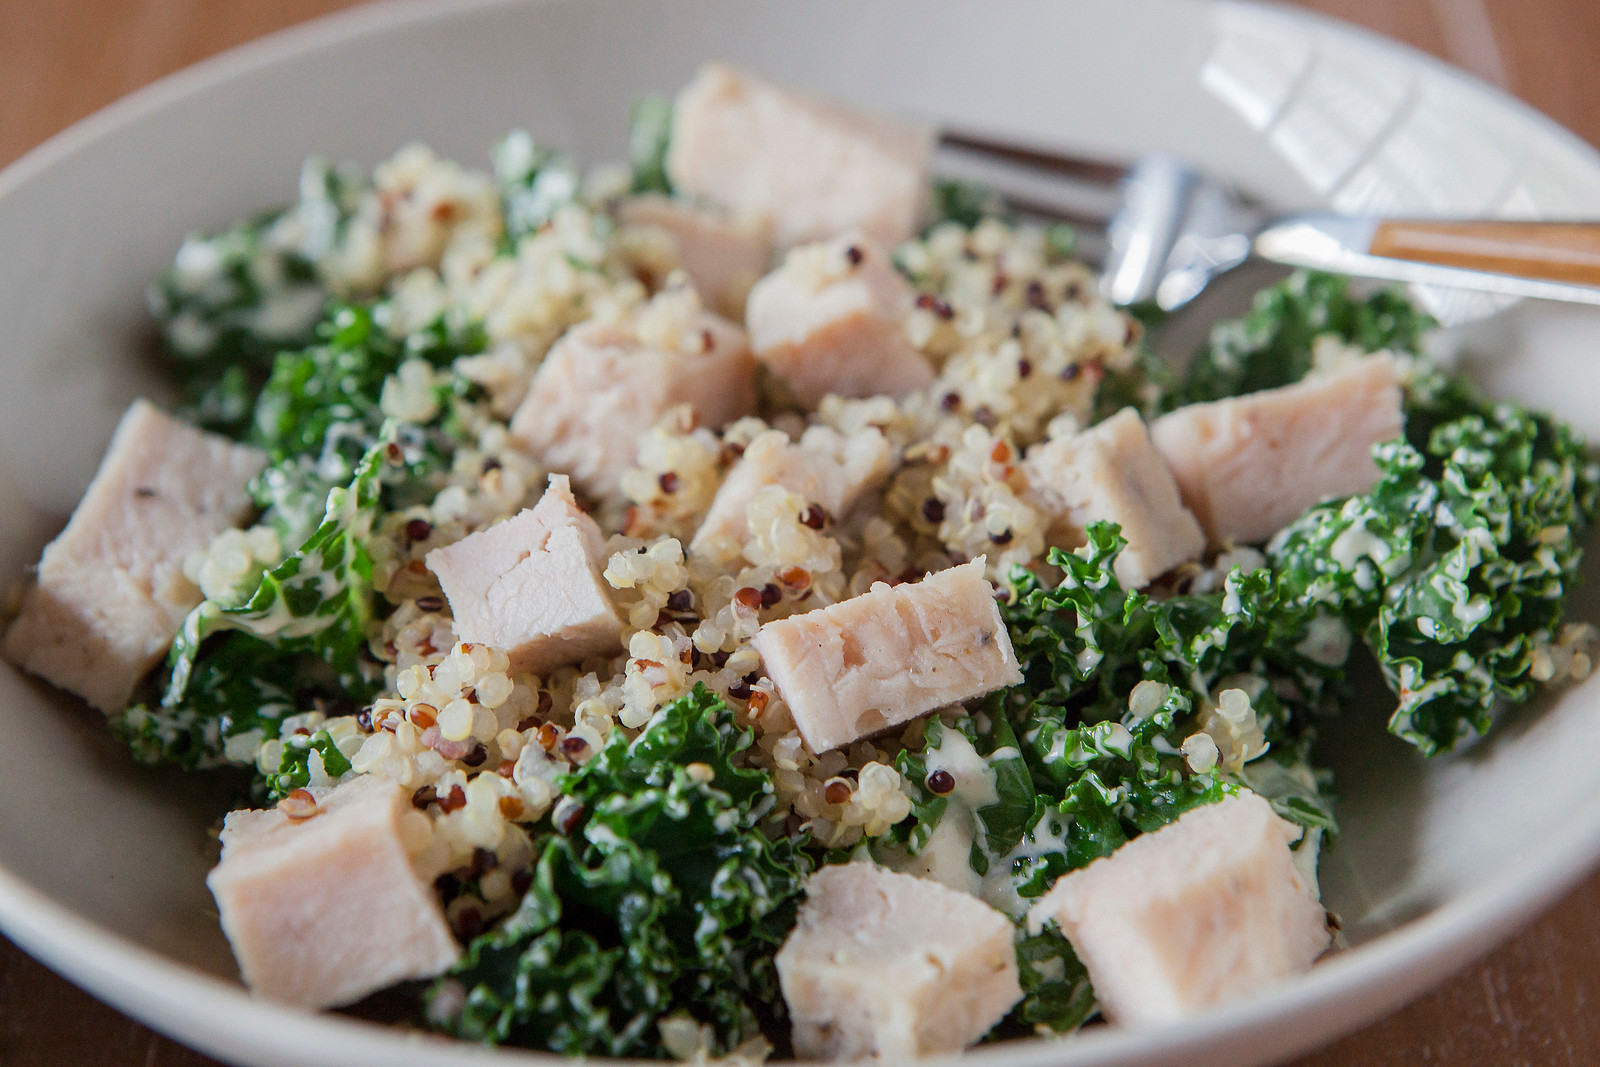 0003_NutritionTwins-garlic-dijon-kale-salad-chicken-quinoa